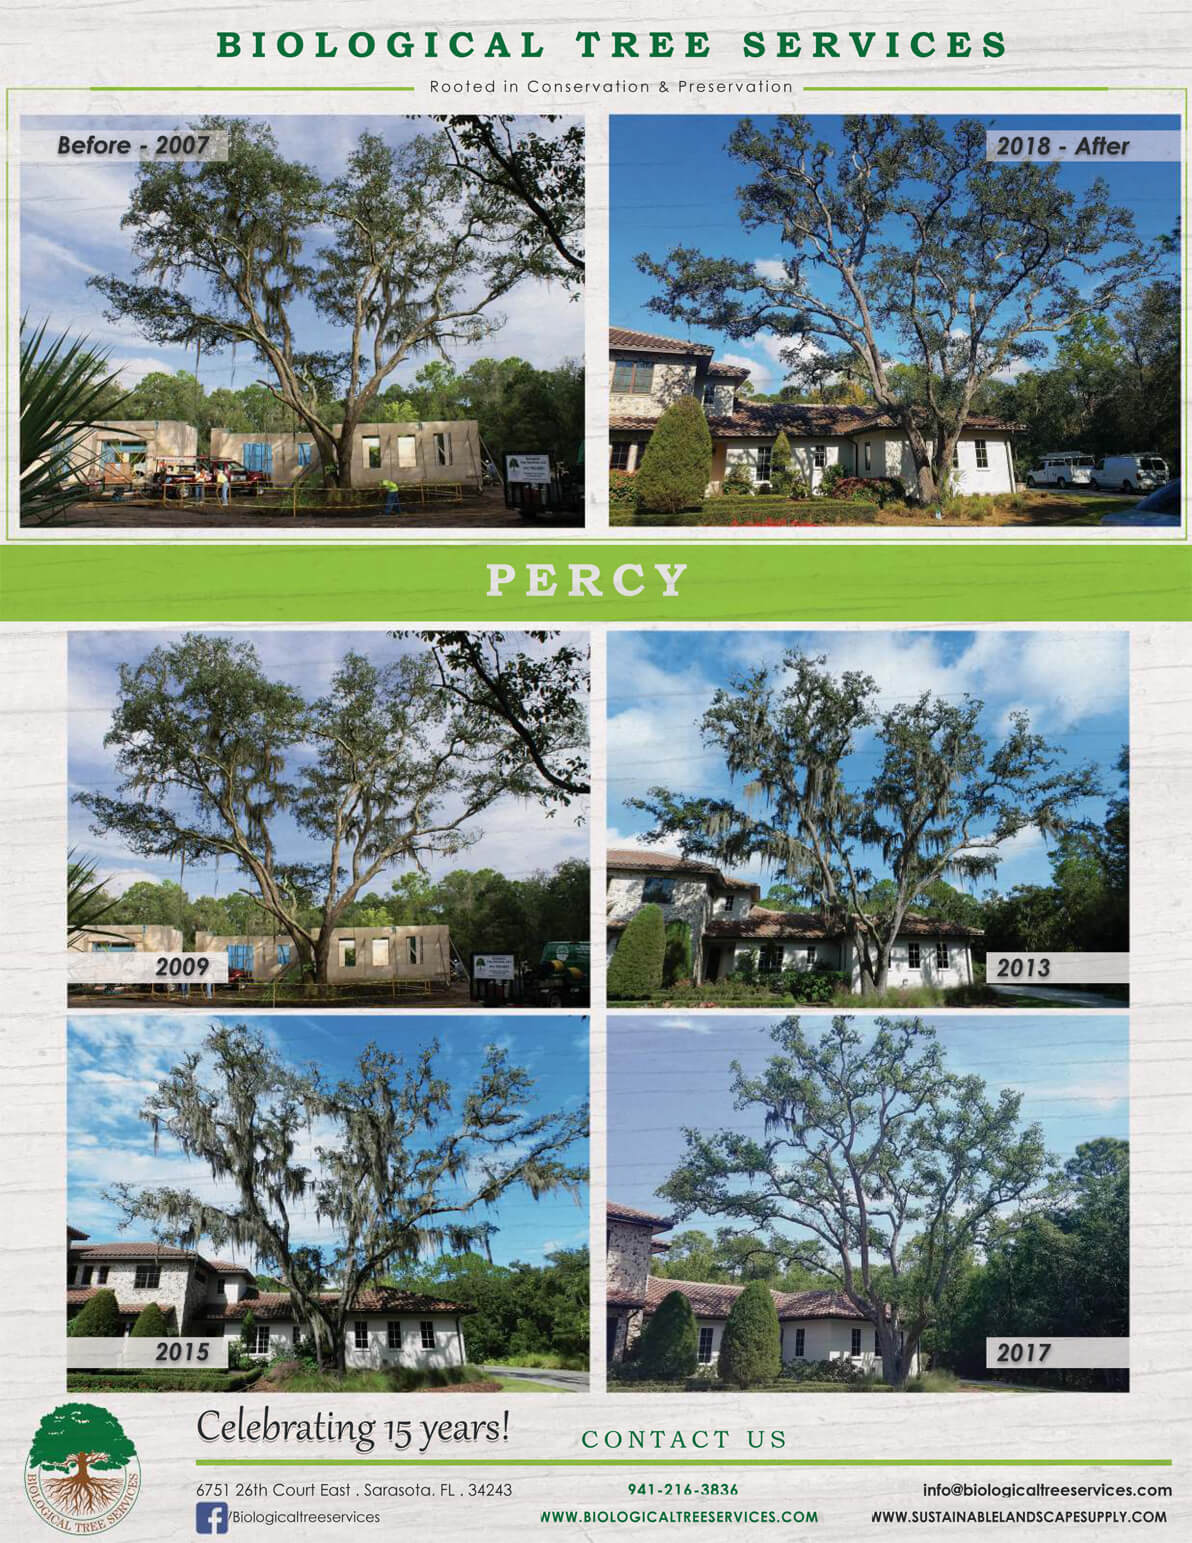 The Percy Tree